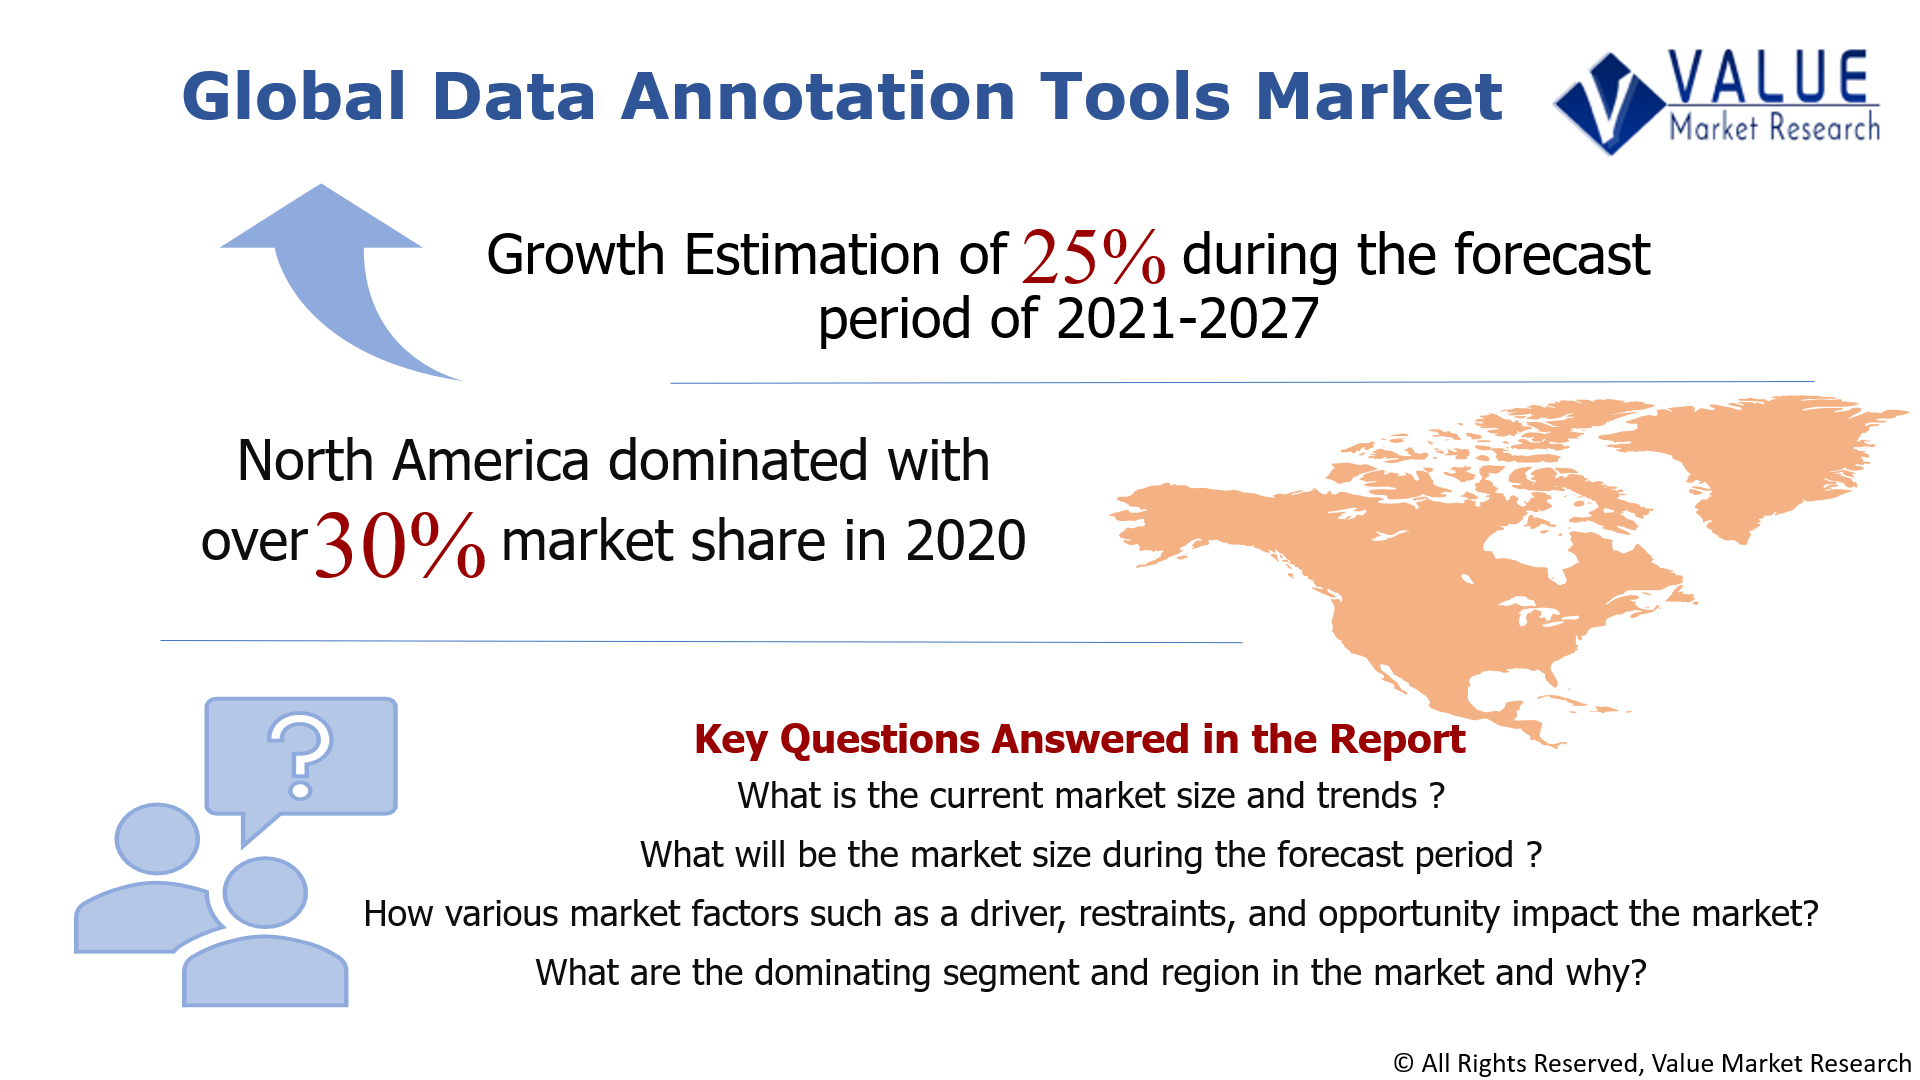 Global Data Annotation Tools Market Share